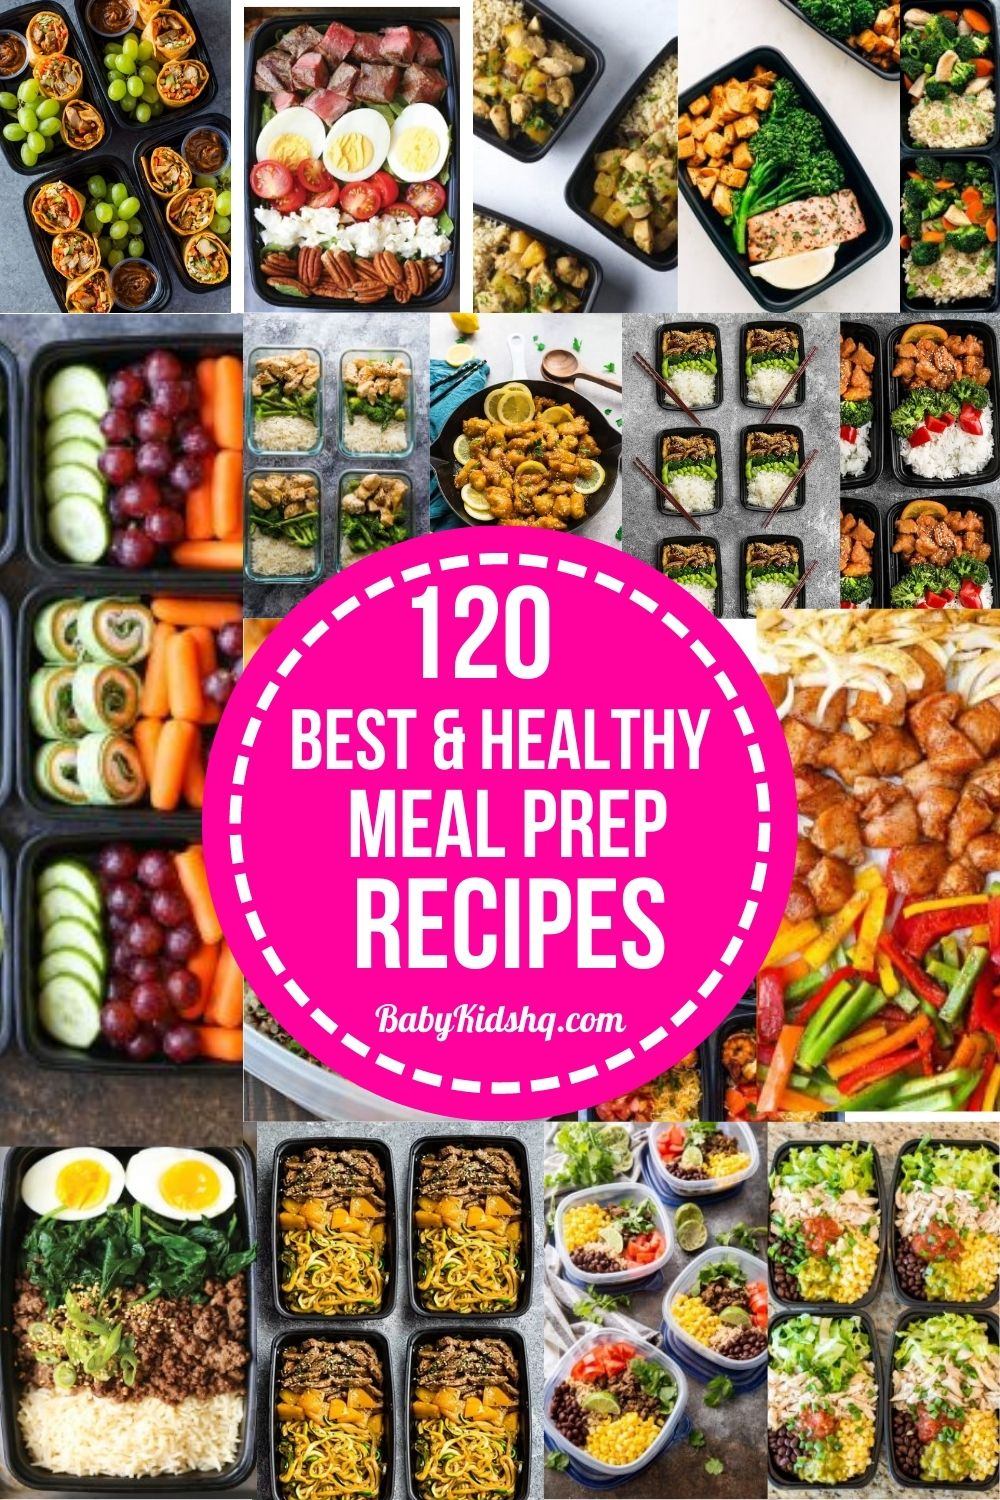 120 Best and Healthy Meal Prep Recipes 36